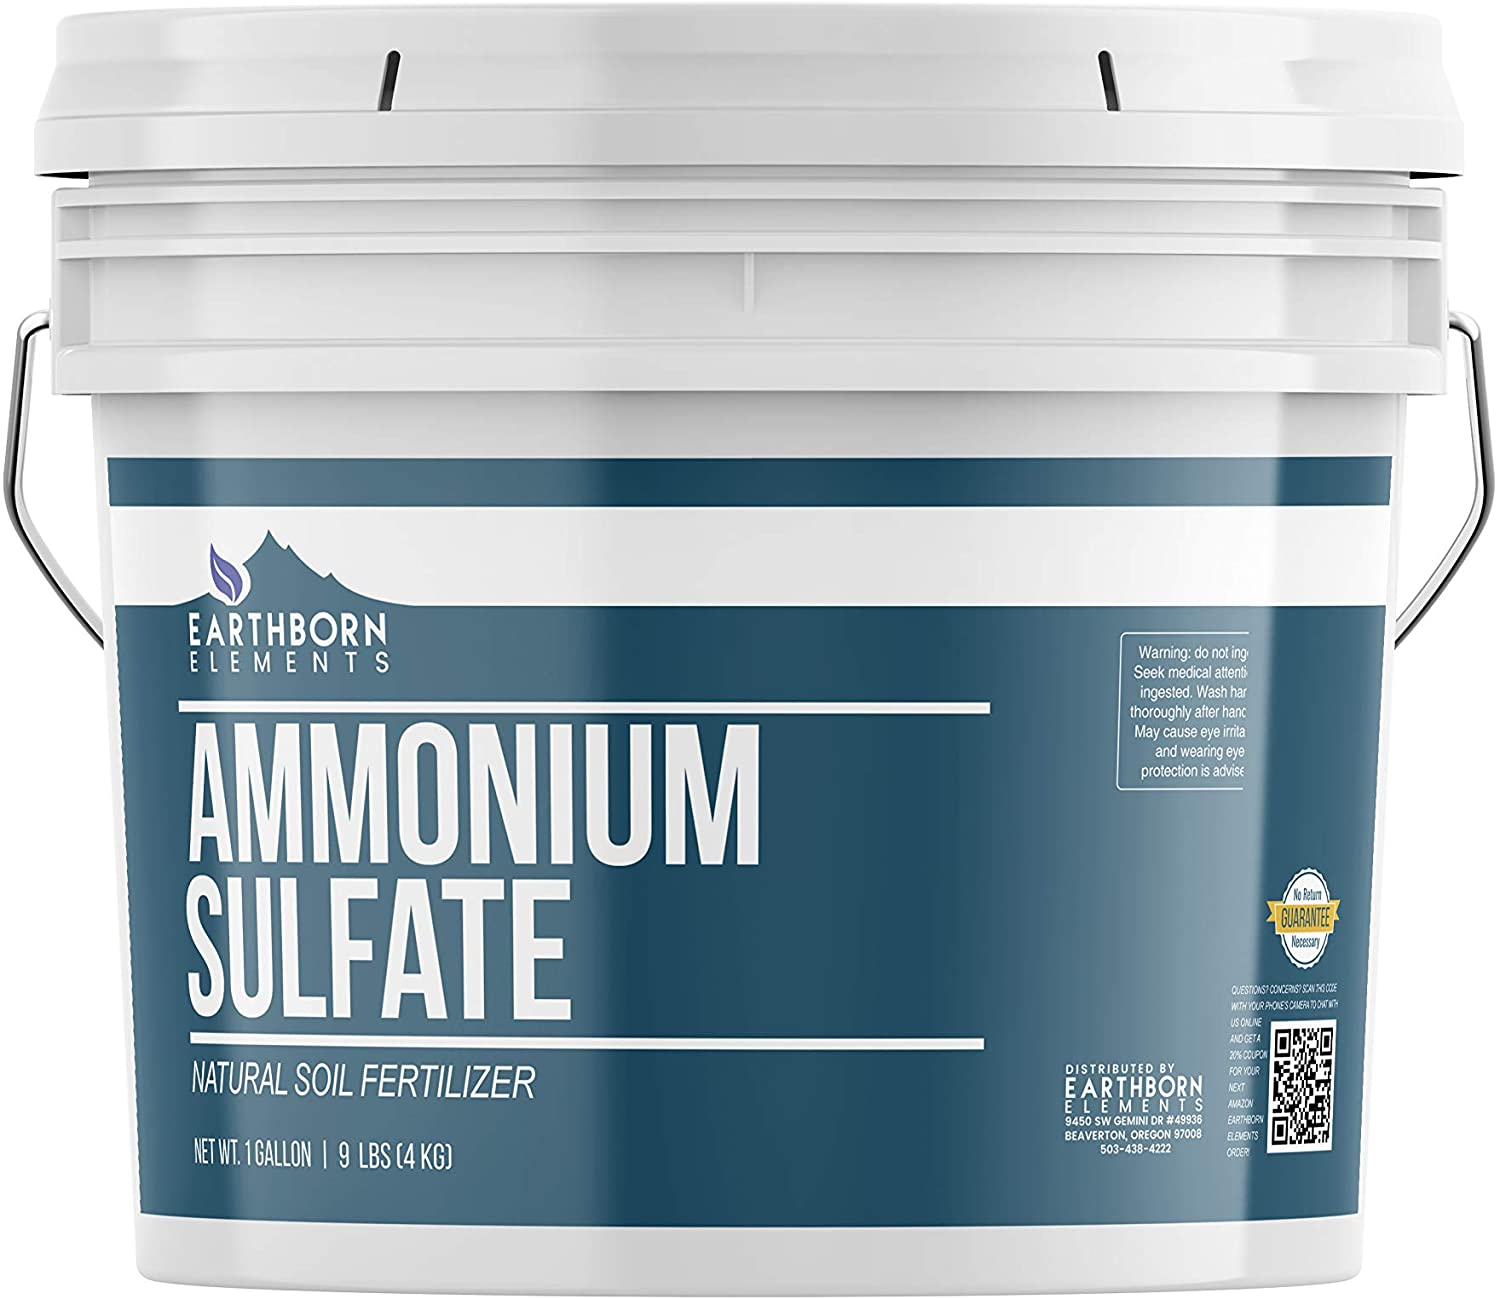 Ammonium Sulfate (1 Gallon Bucket, 9 lbs) by Earthborn Elements, Soil Fertilizer, Rich in Nitrogen, Lowers pH, Inorganic Salt, Improves Plant & Soil Quality, Agricultural Uses, Resealable Bucket